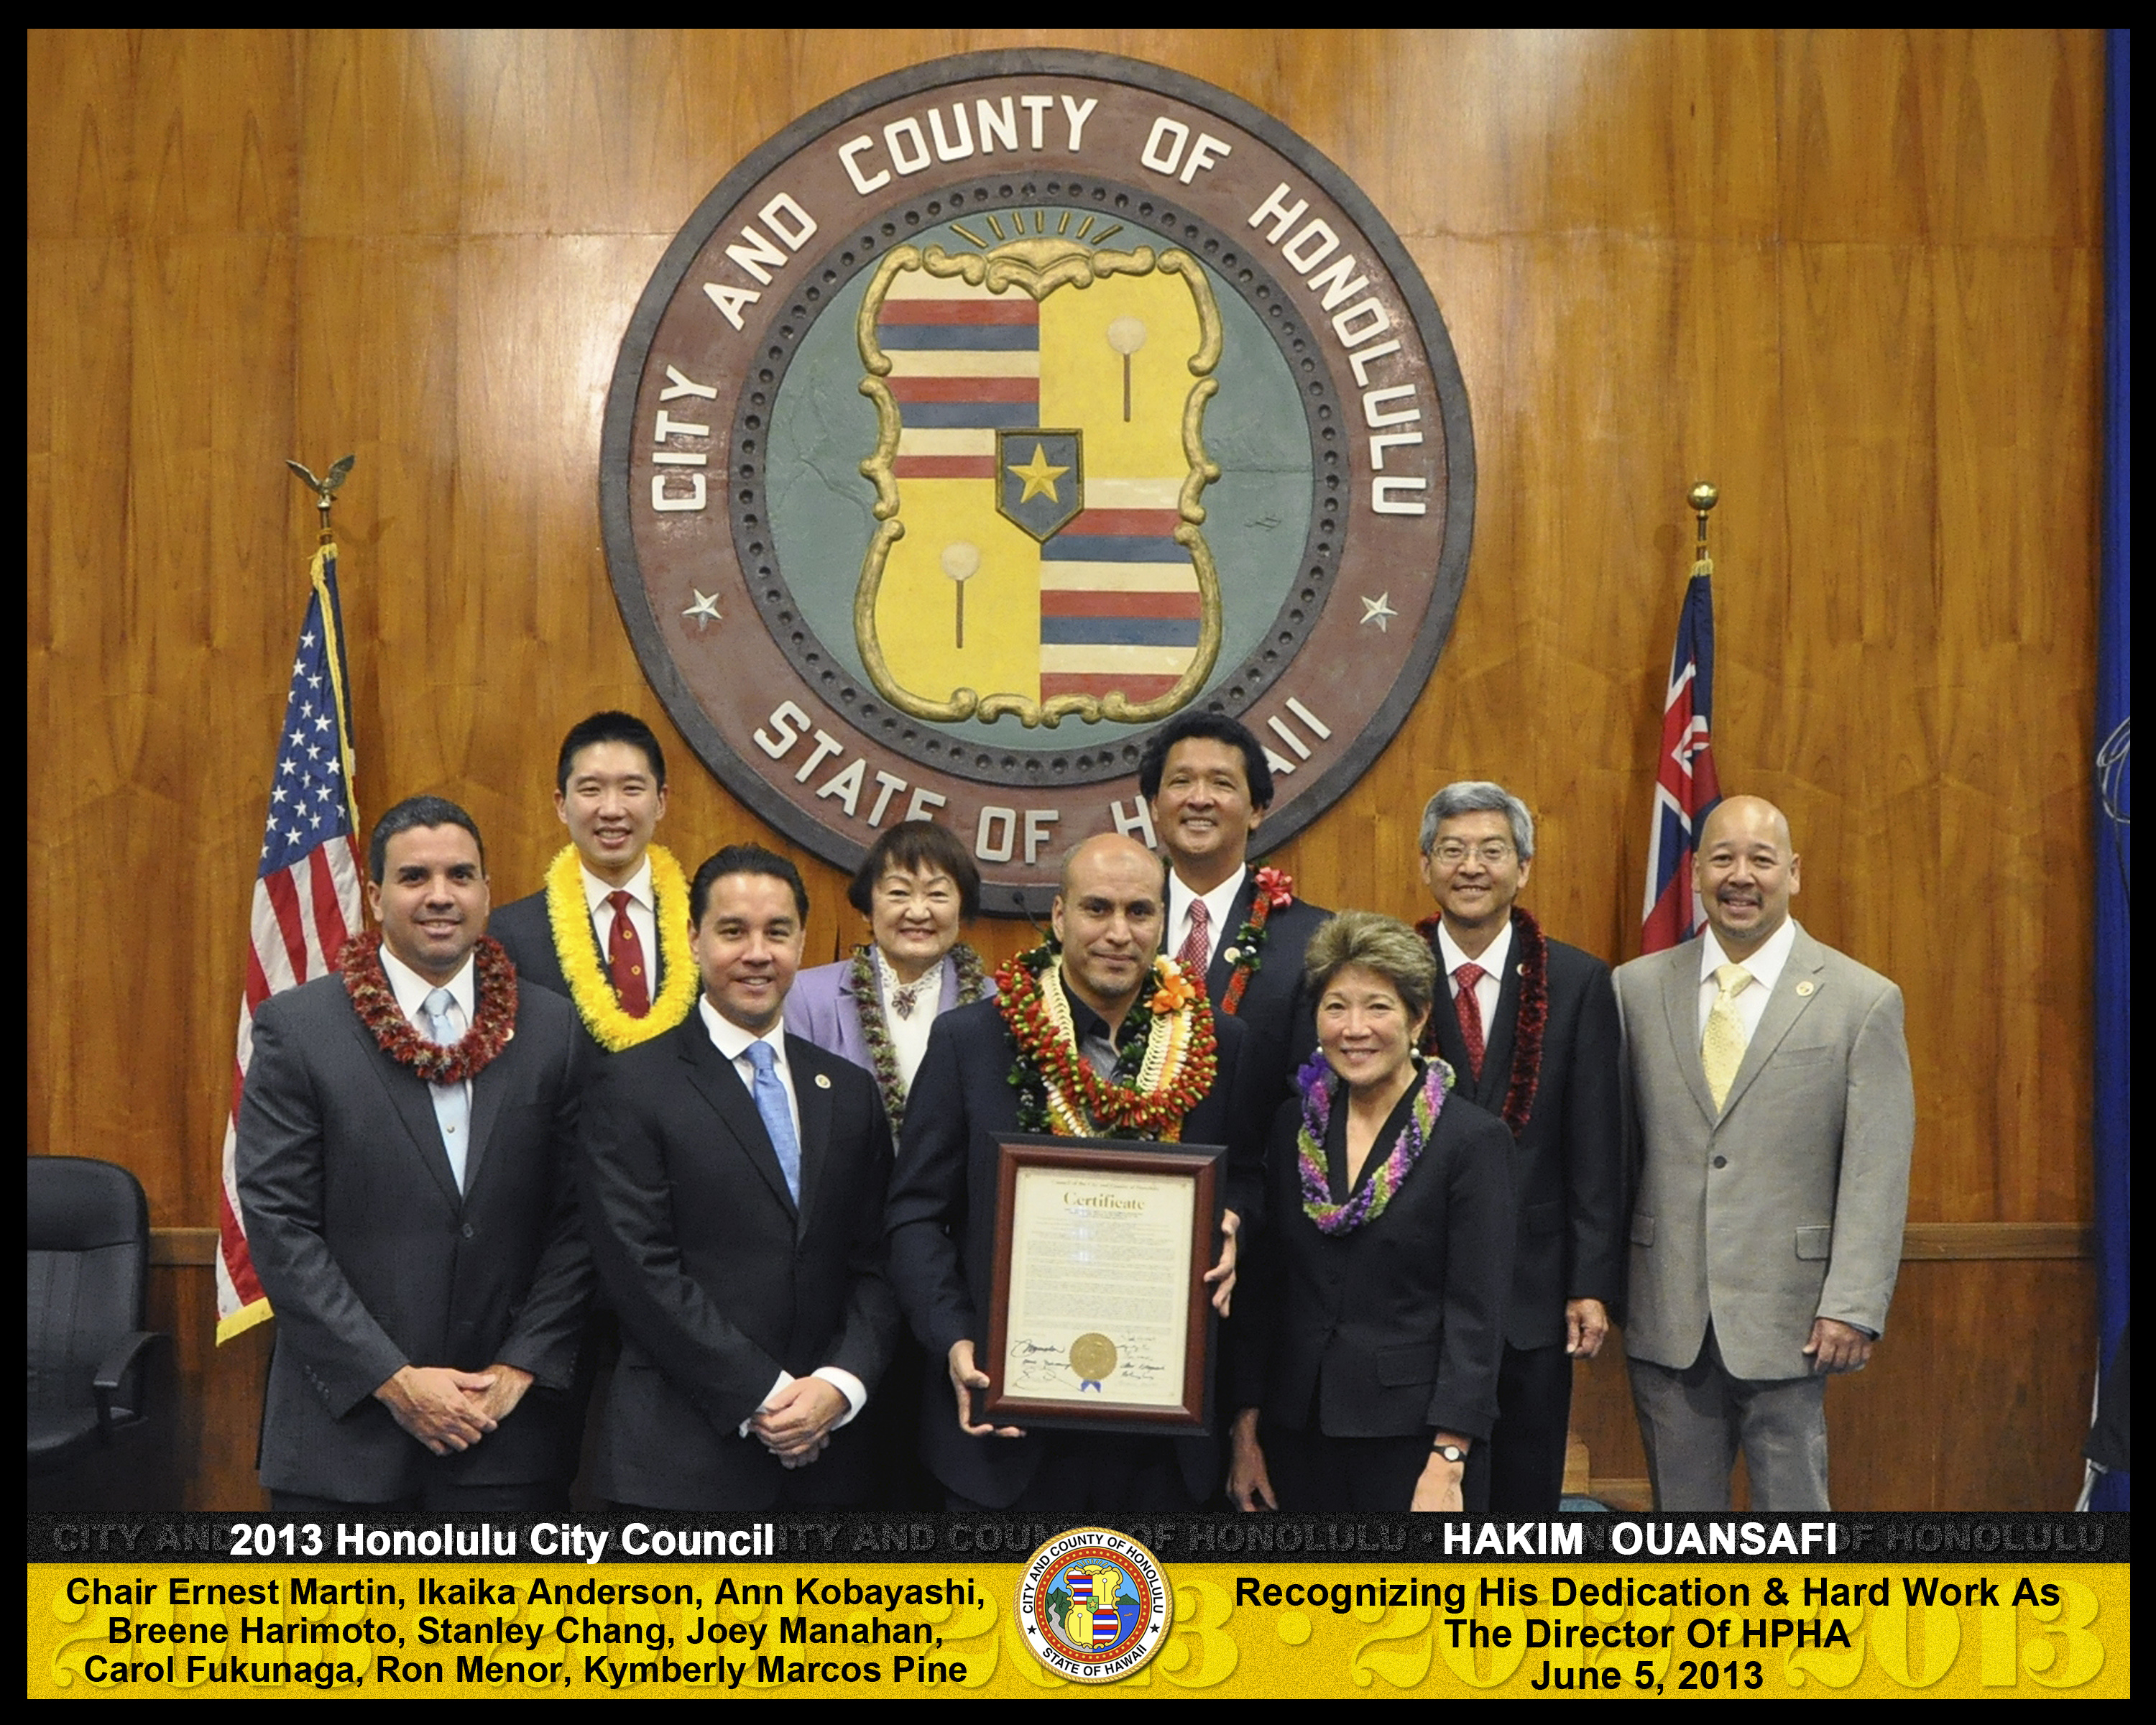 District 7 News – Page 140 – Councilmember Joey Manahan